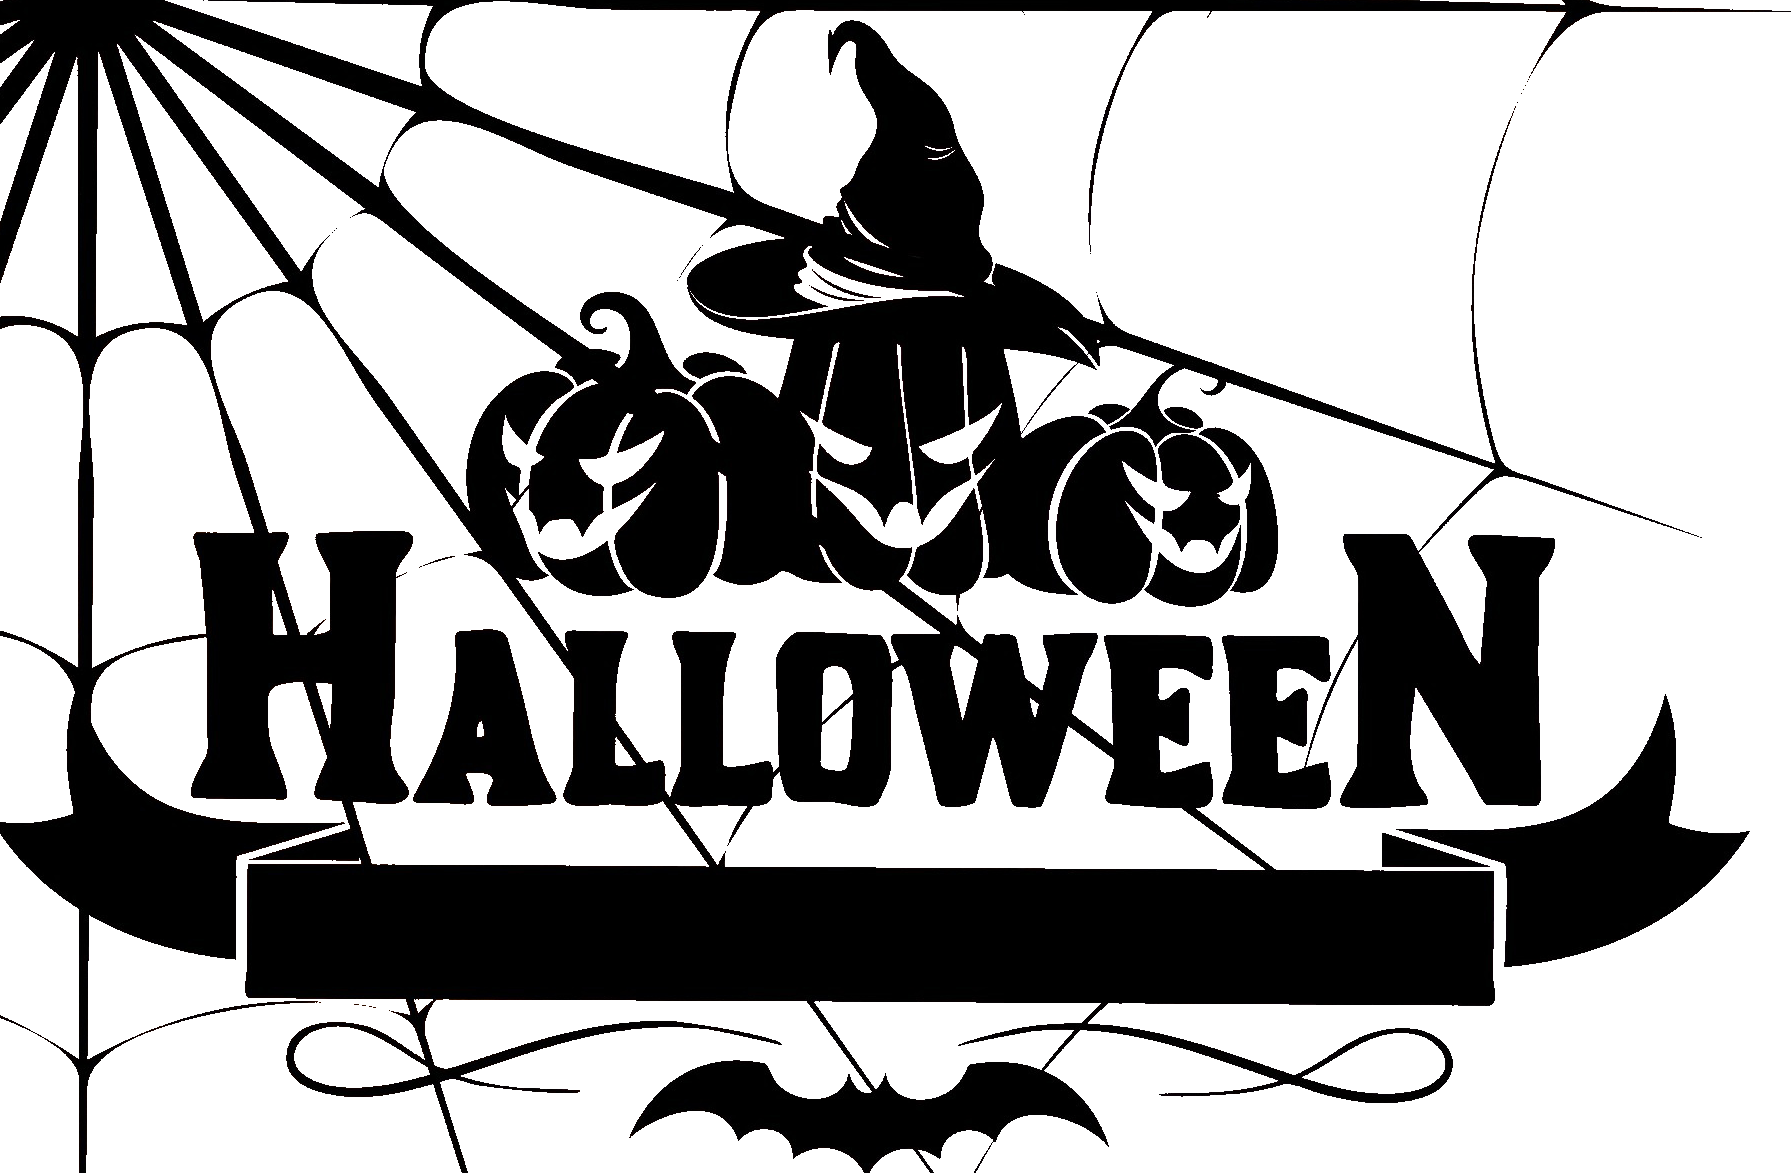 Halloween sign clipart clip art freeuse download Free Halloween Sign With Jack-o-Lanters and a Bat PNG Image clip art freeuse download